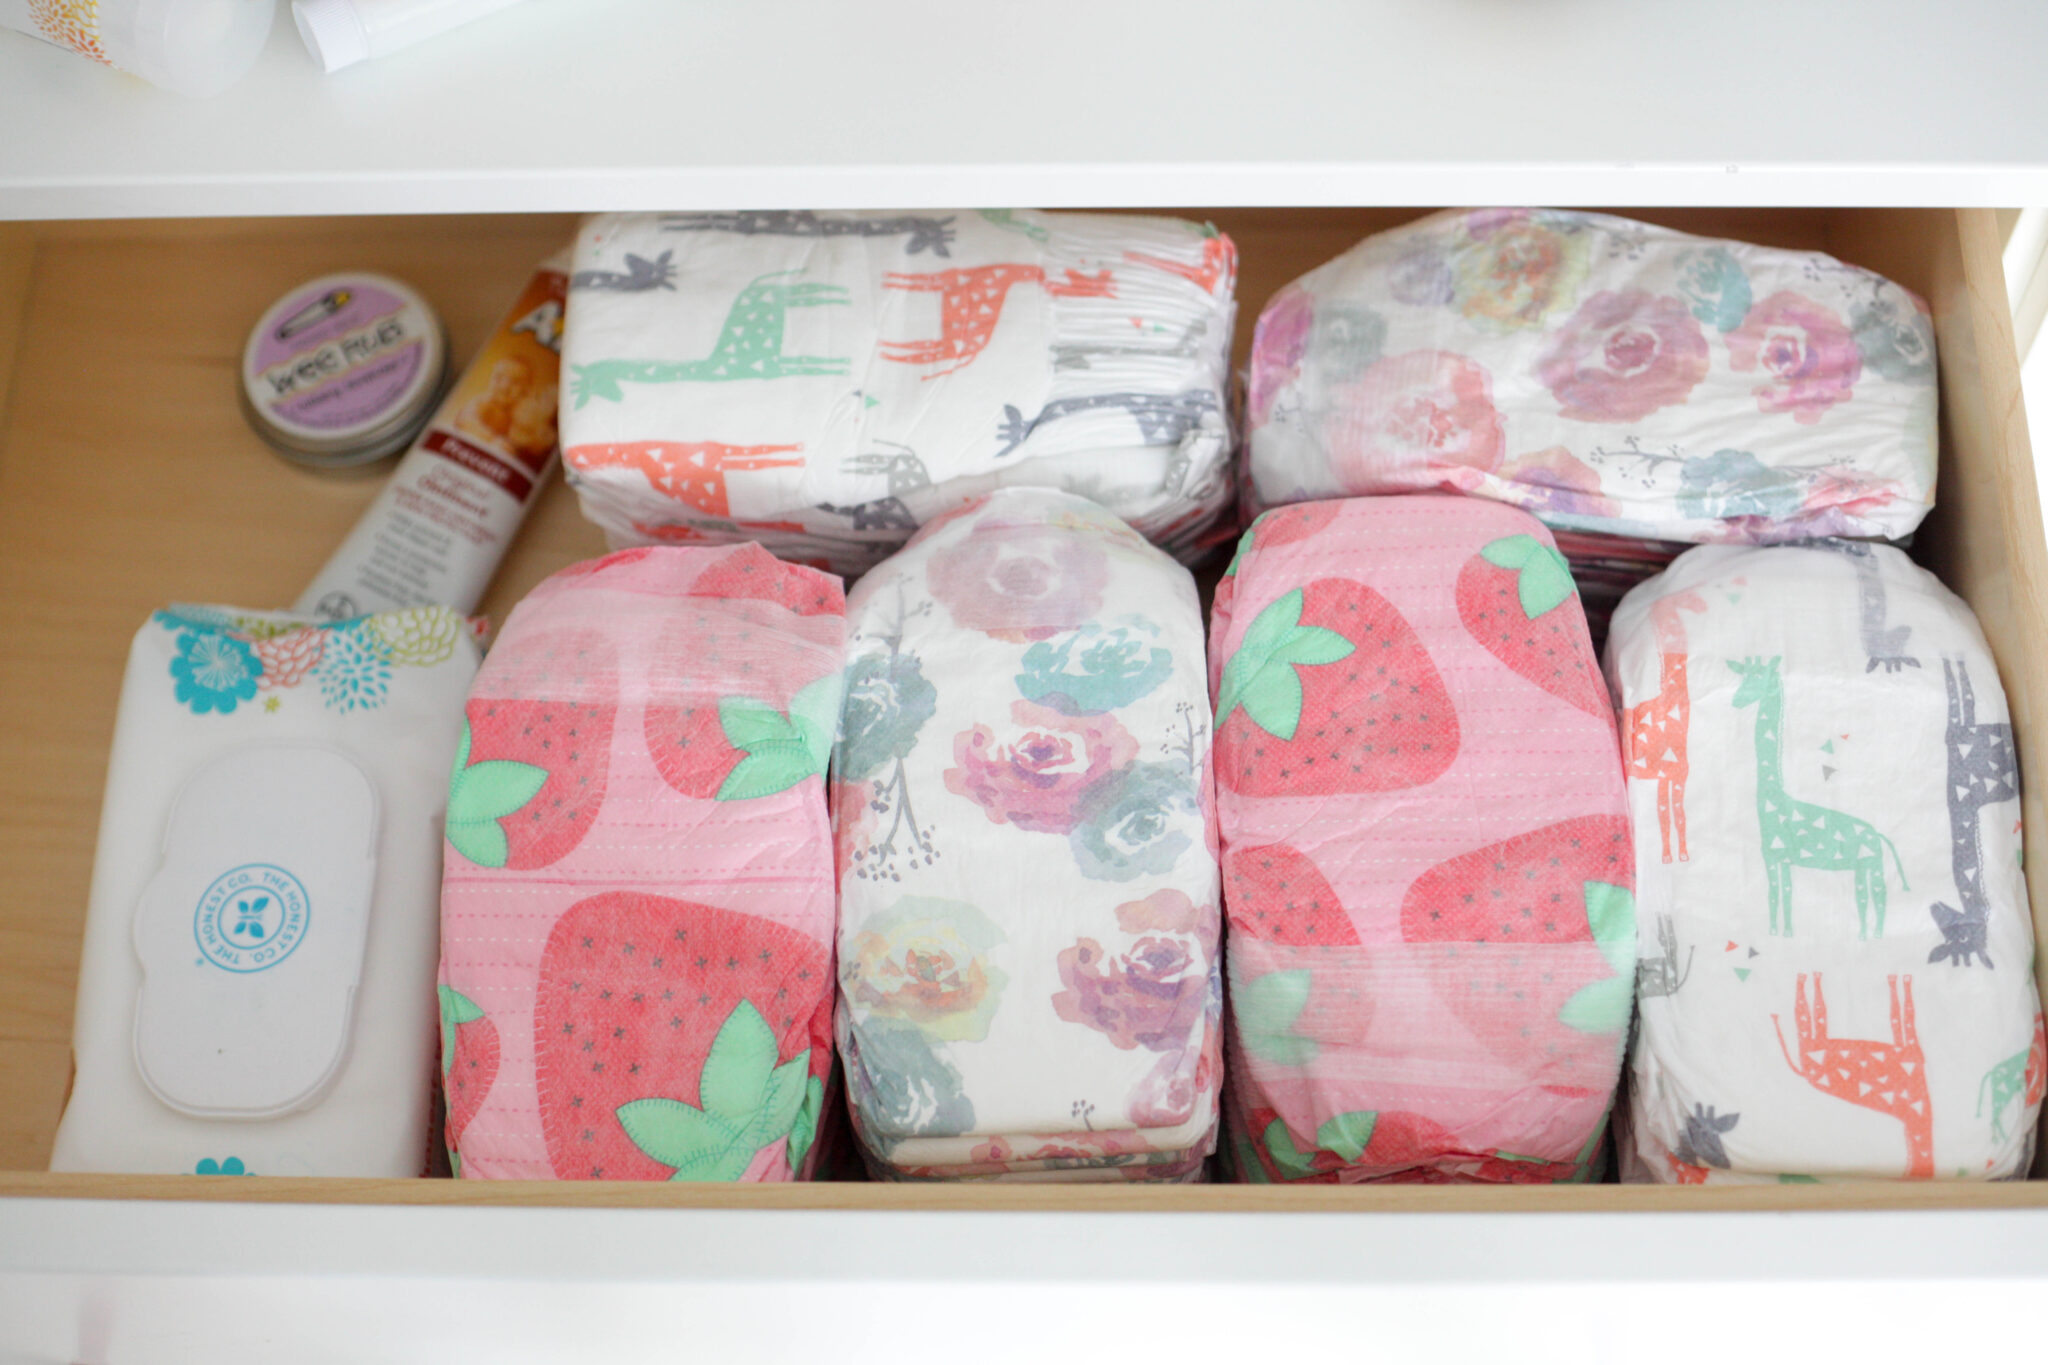 organizing baby's closet - dresser drawers with diapers